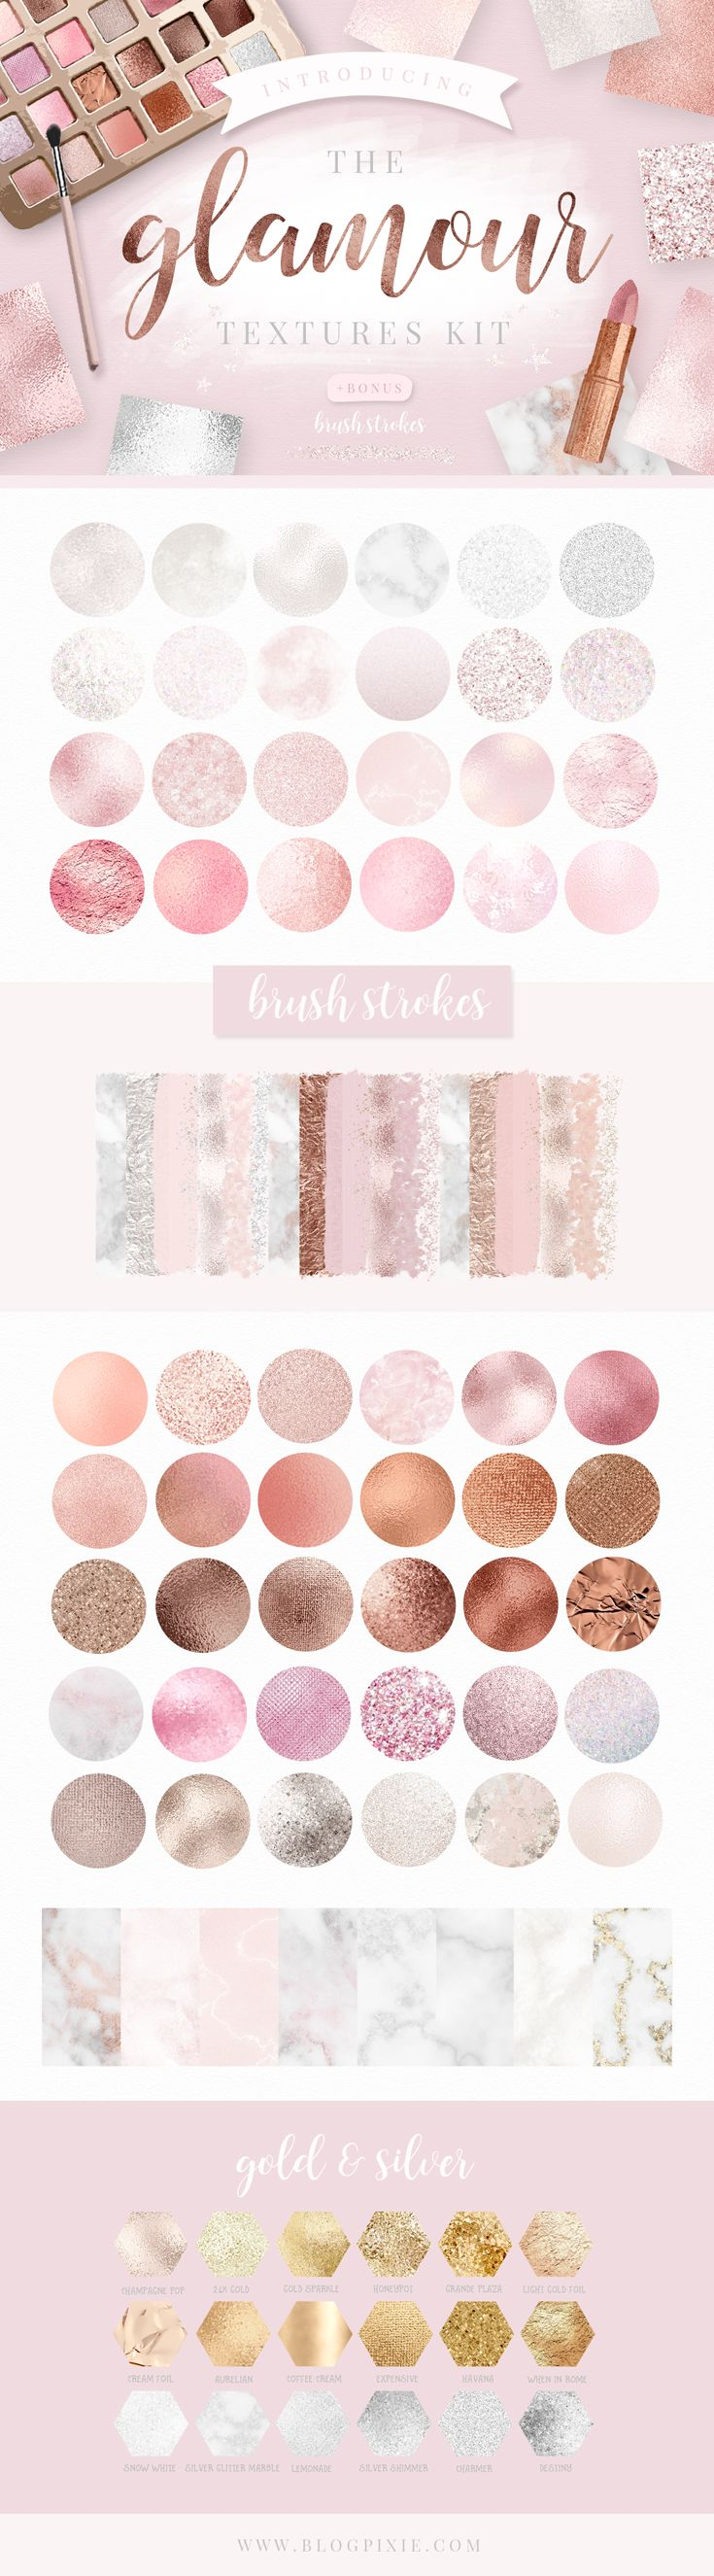 Download metallic textures and brush strokes in silver, marble, blush, rose gold and gold to add to graphic design, logos, branding, stationery, scrapbooking, blog design, eBooks and more! Click on the image to find The Glamour Textures Kit at Creative Market ♥